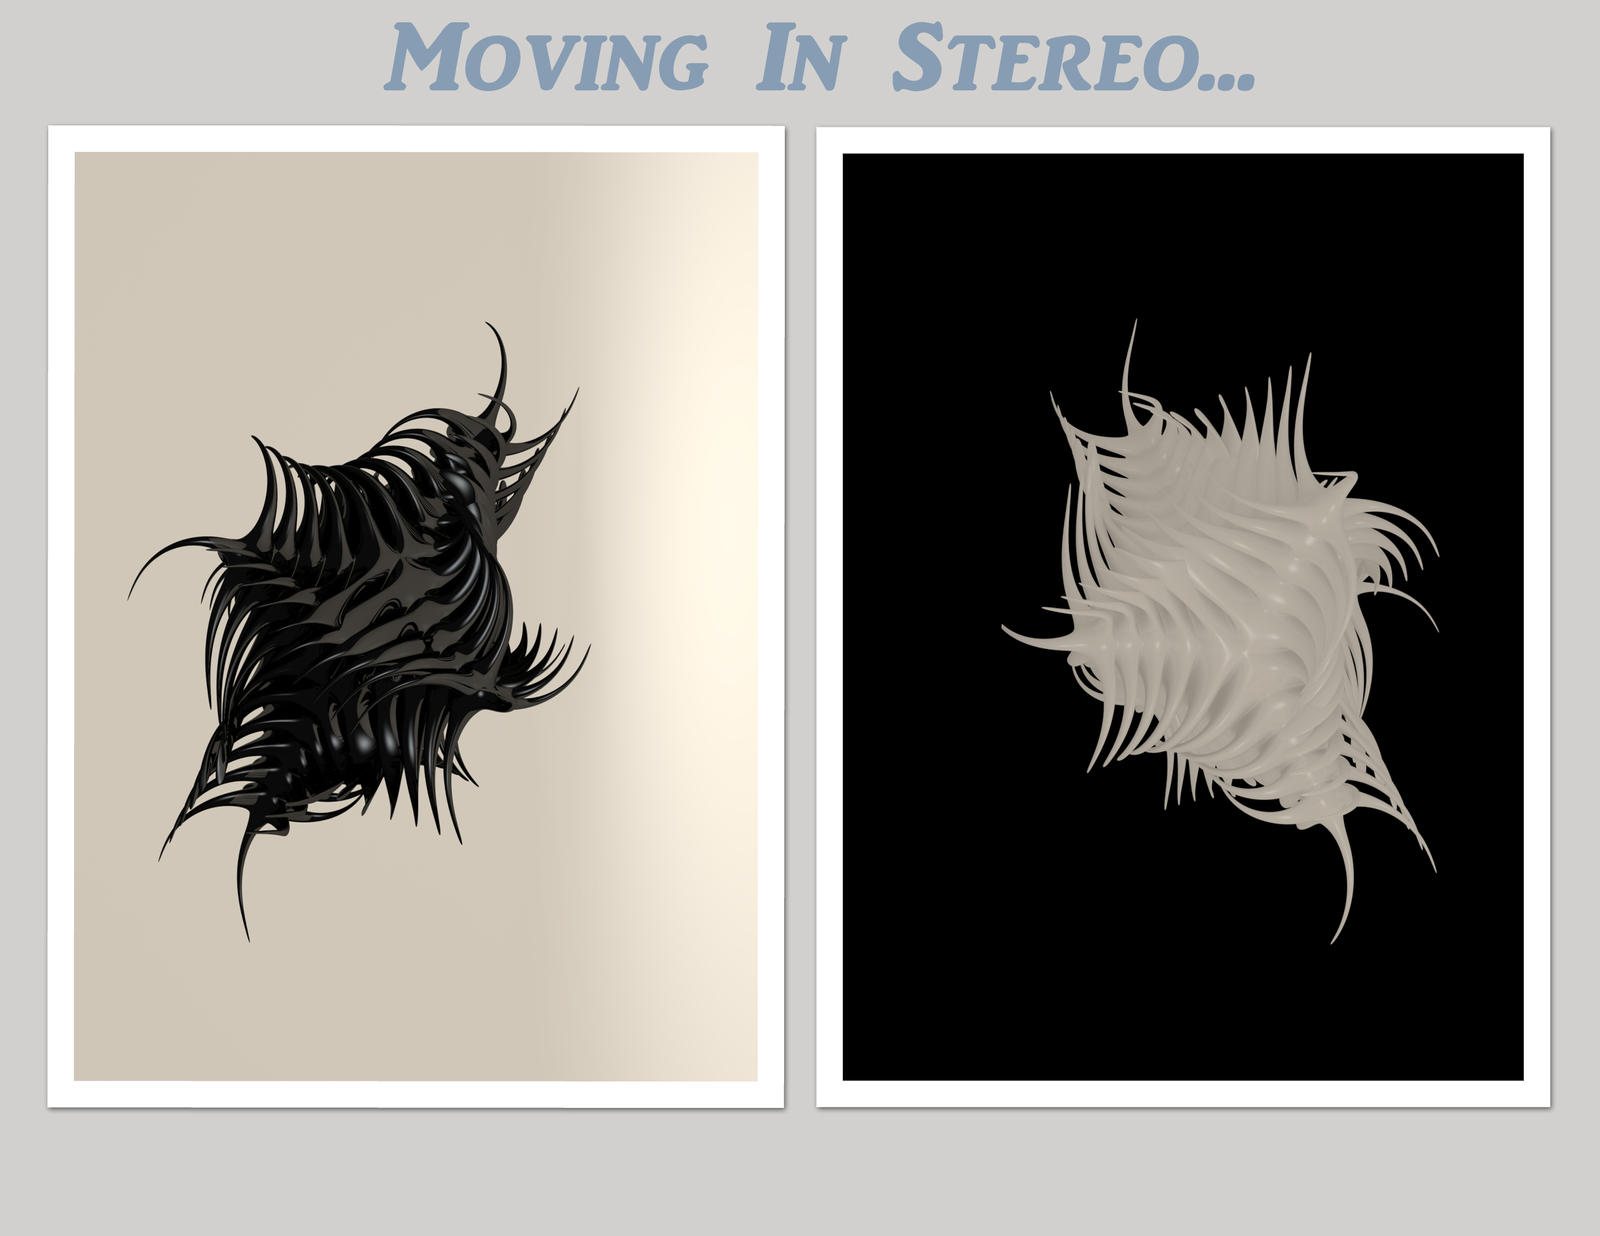 Moving In Stereo by Joe-Maccer